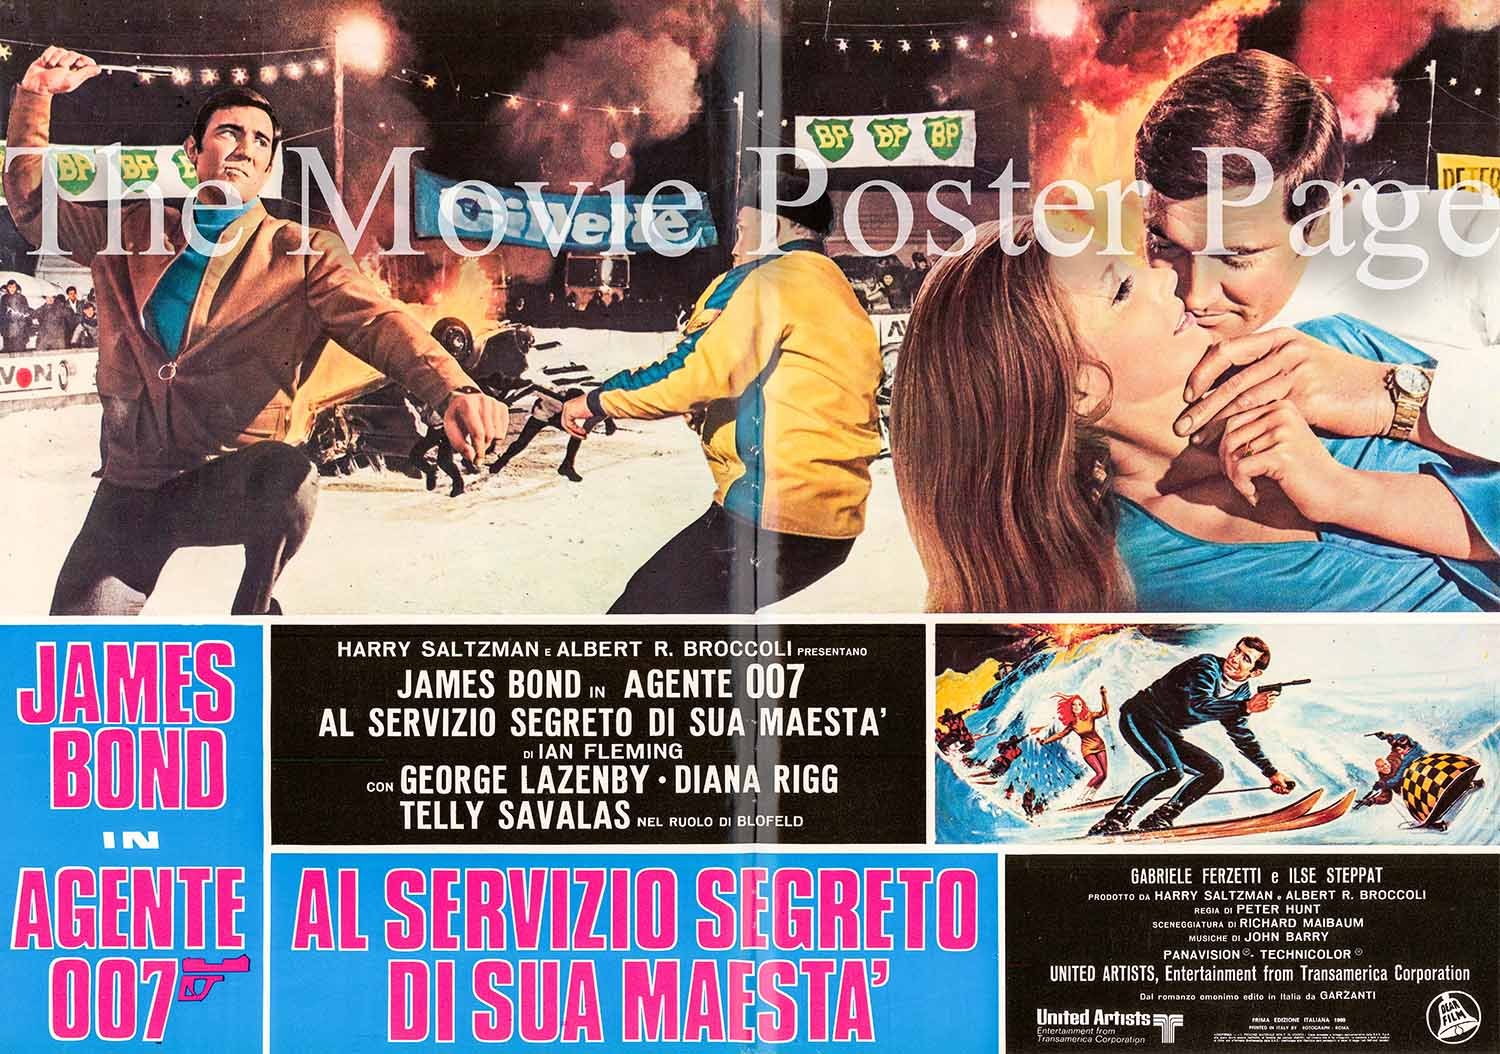 Pictured is a Italian fotobusta #1 promotional poster for the 1969 Peter R. Hunt film On Her Majesty's Secret Service starring George Lazenby as James Bond.